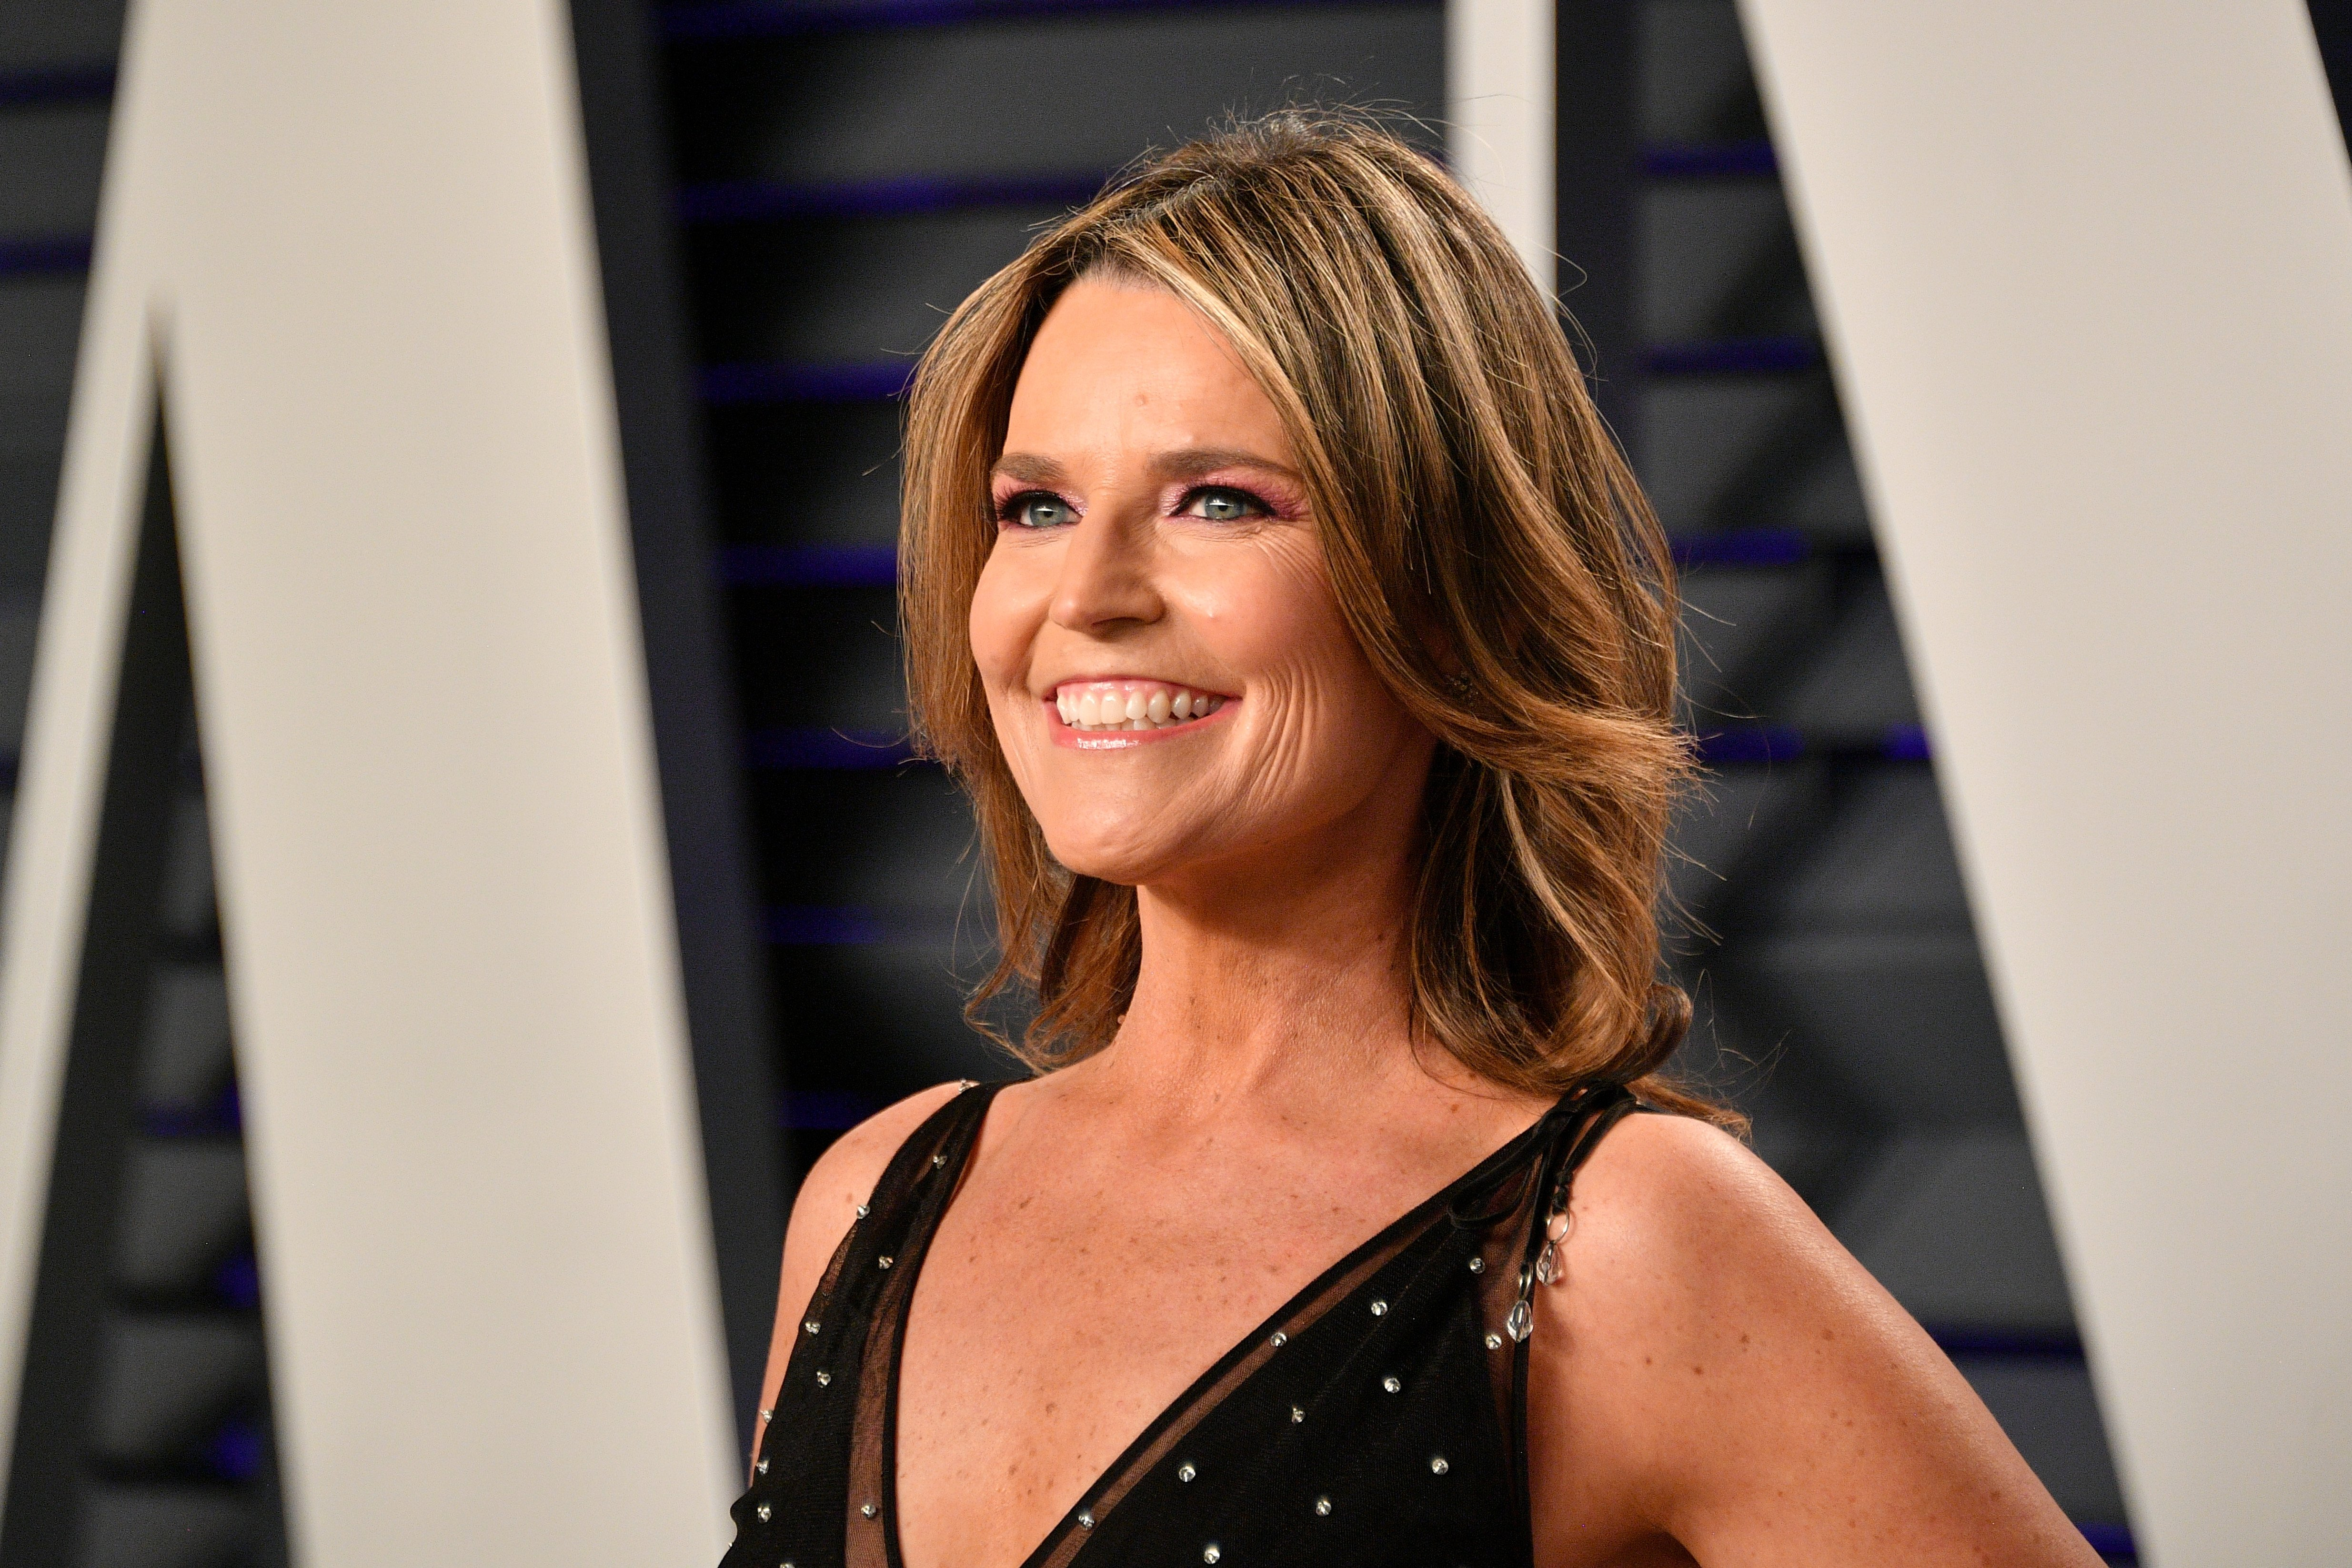 Savannah Guthrie Image Source: Getty Images.